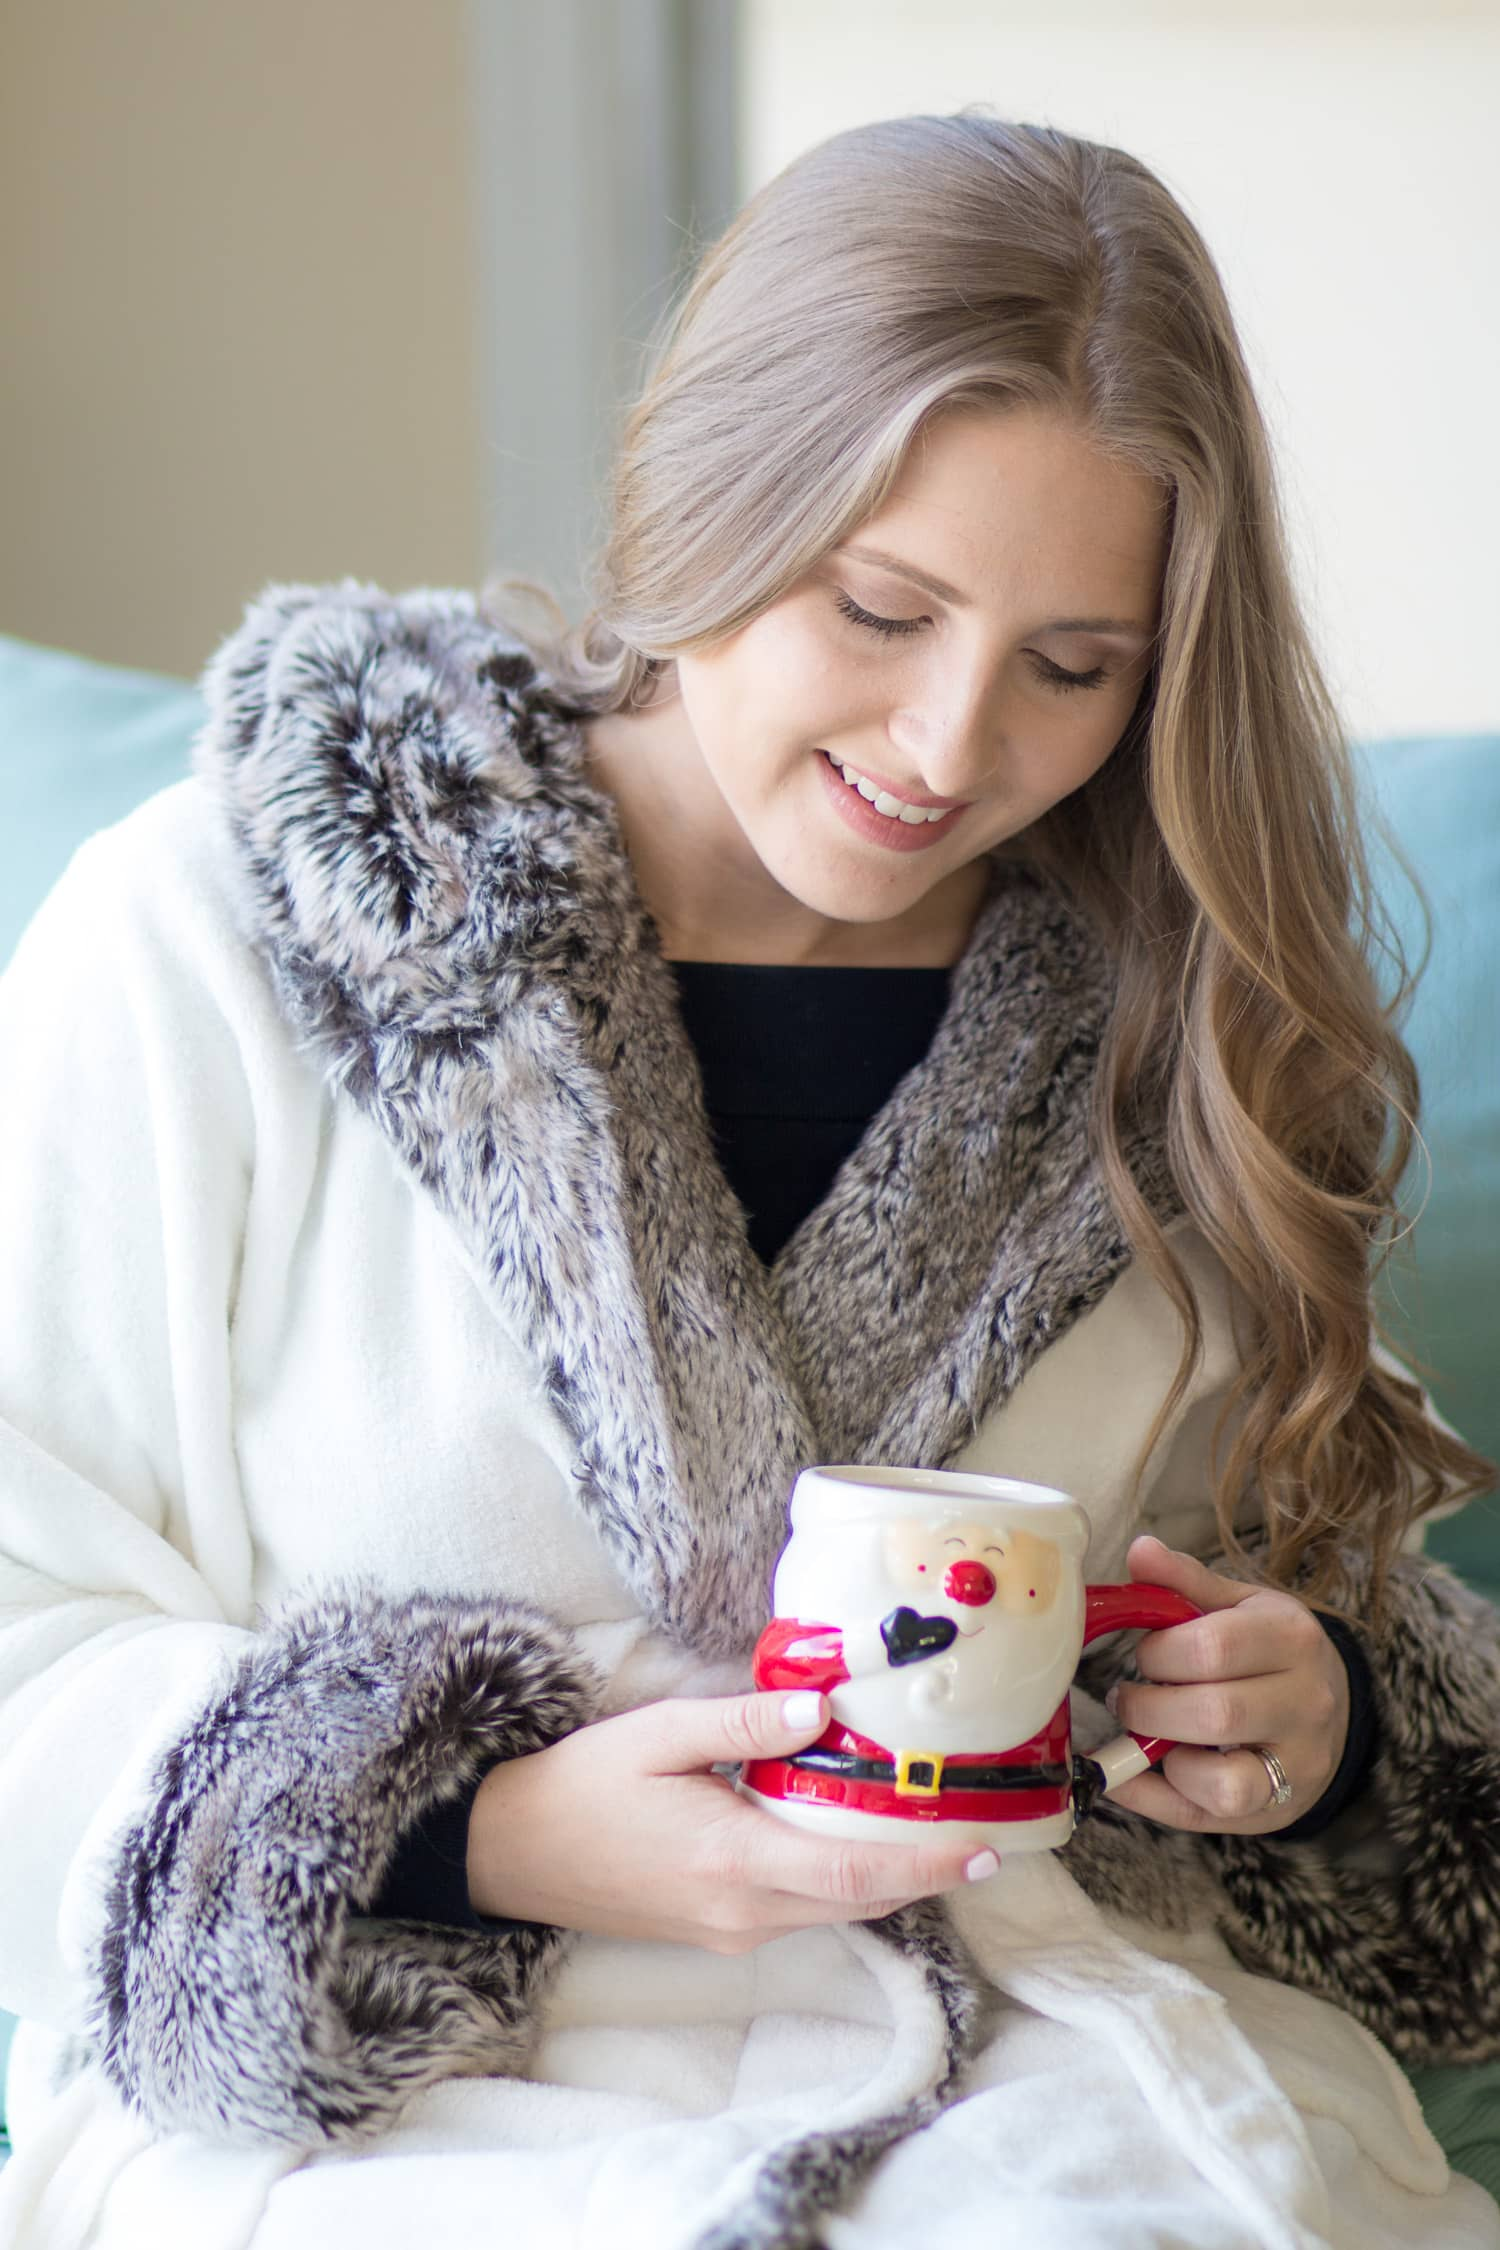 Cozy Holiday Home Decor Ashley Brooke Nicholas